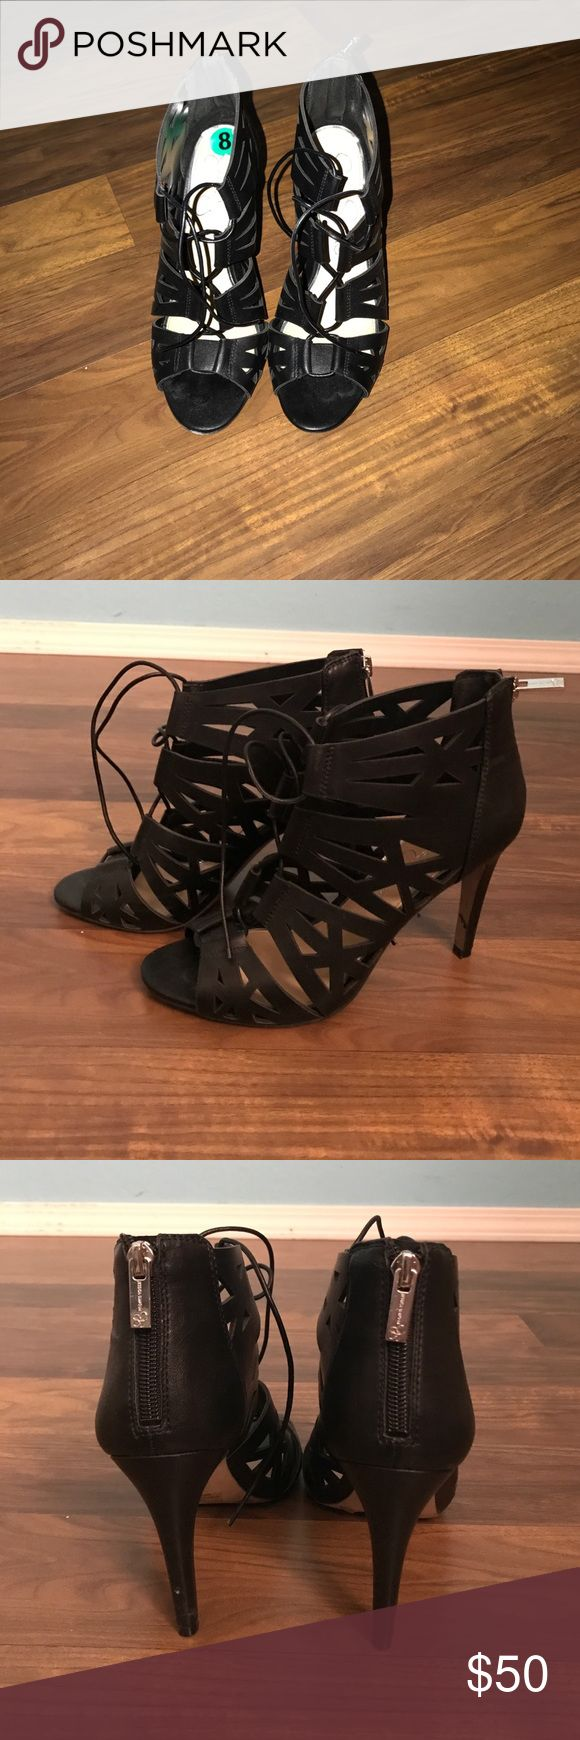 Jessica Simpson heels These heels were worn one time unfortunately they fit me a little big. They are a great pair of heels, super comfortable and easy to pair with any outfit ! They have a zipper in the back as well as a lace up detail on the front. Amazing pair to add to any woman's collection of heels ‼️ I am open to offers but NO LOW BALLING ‼️😊 Jessica Simpson Shoes Heels